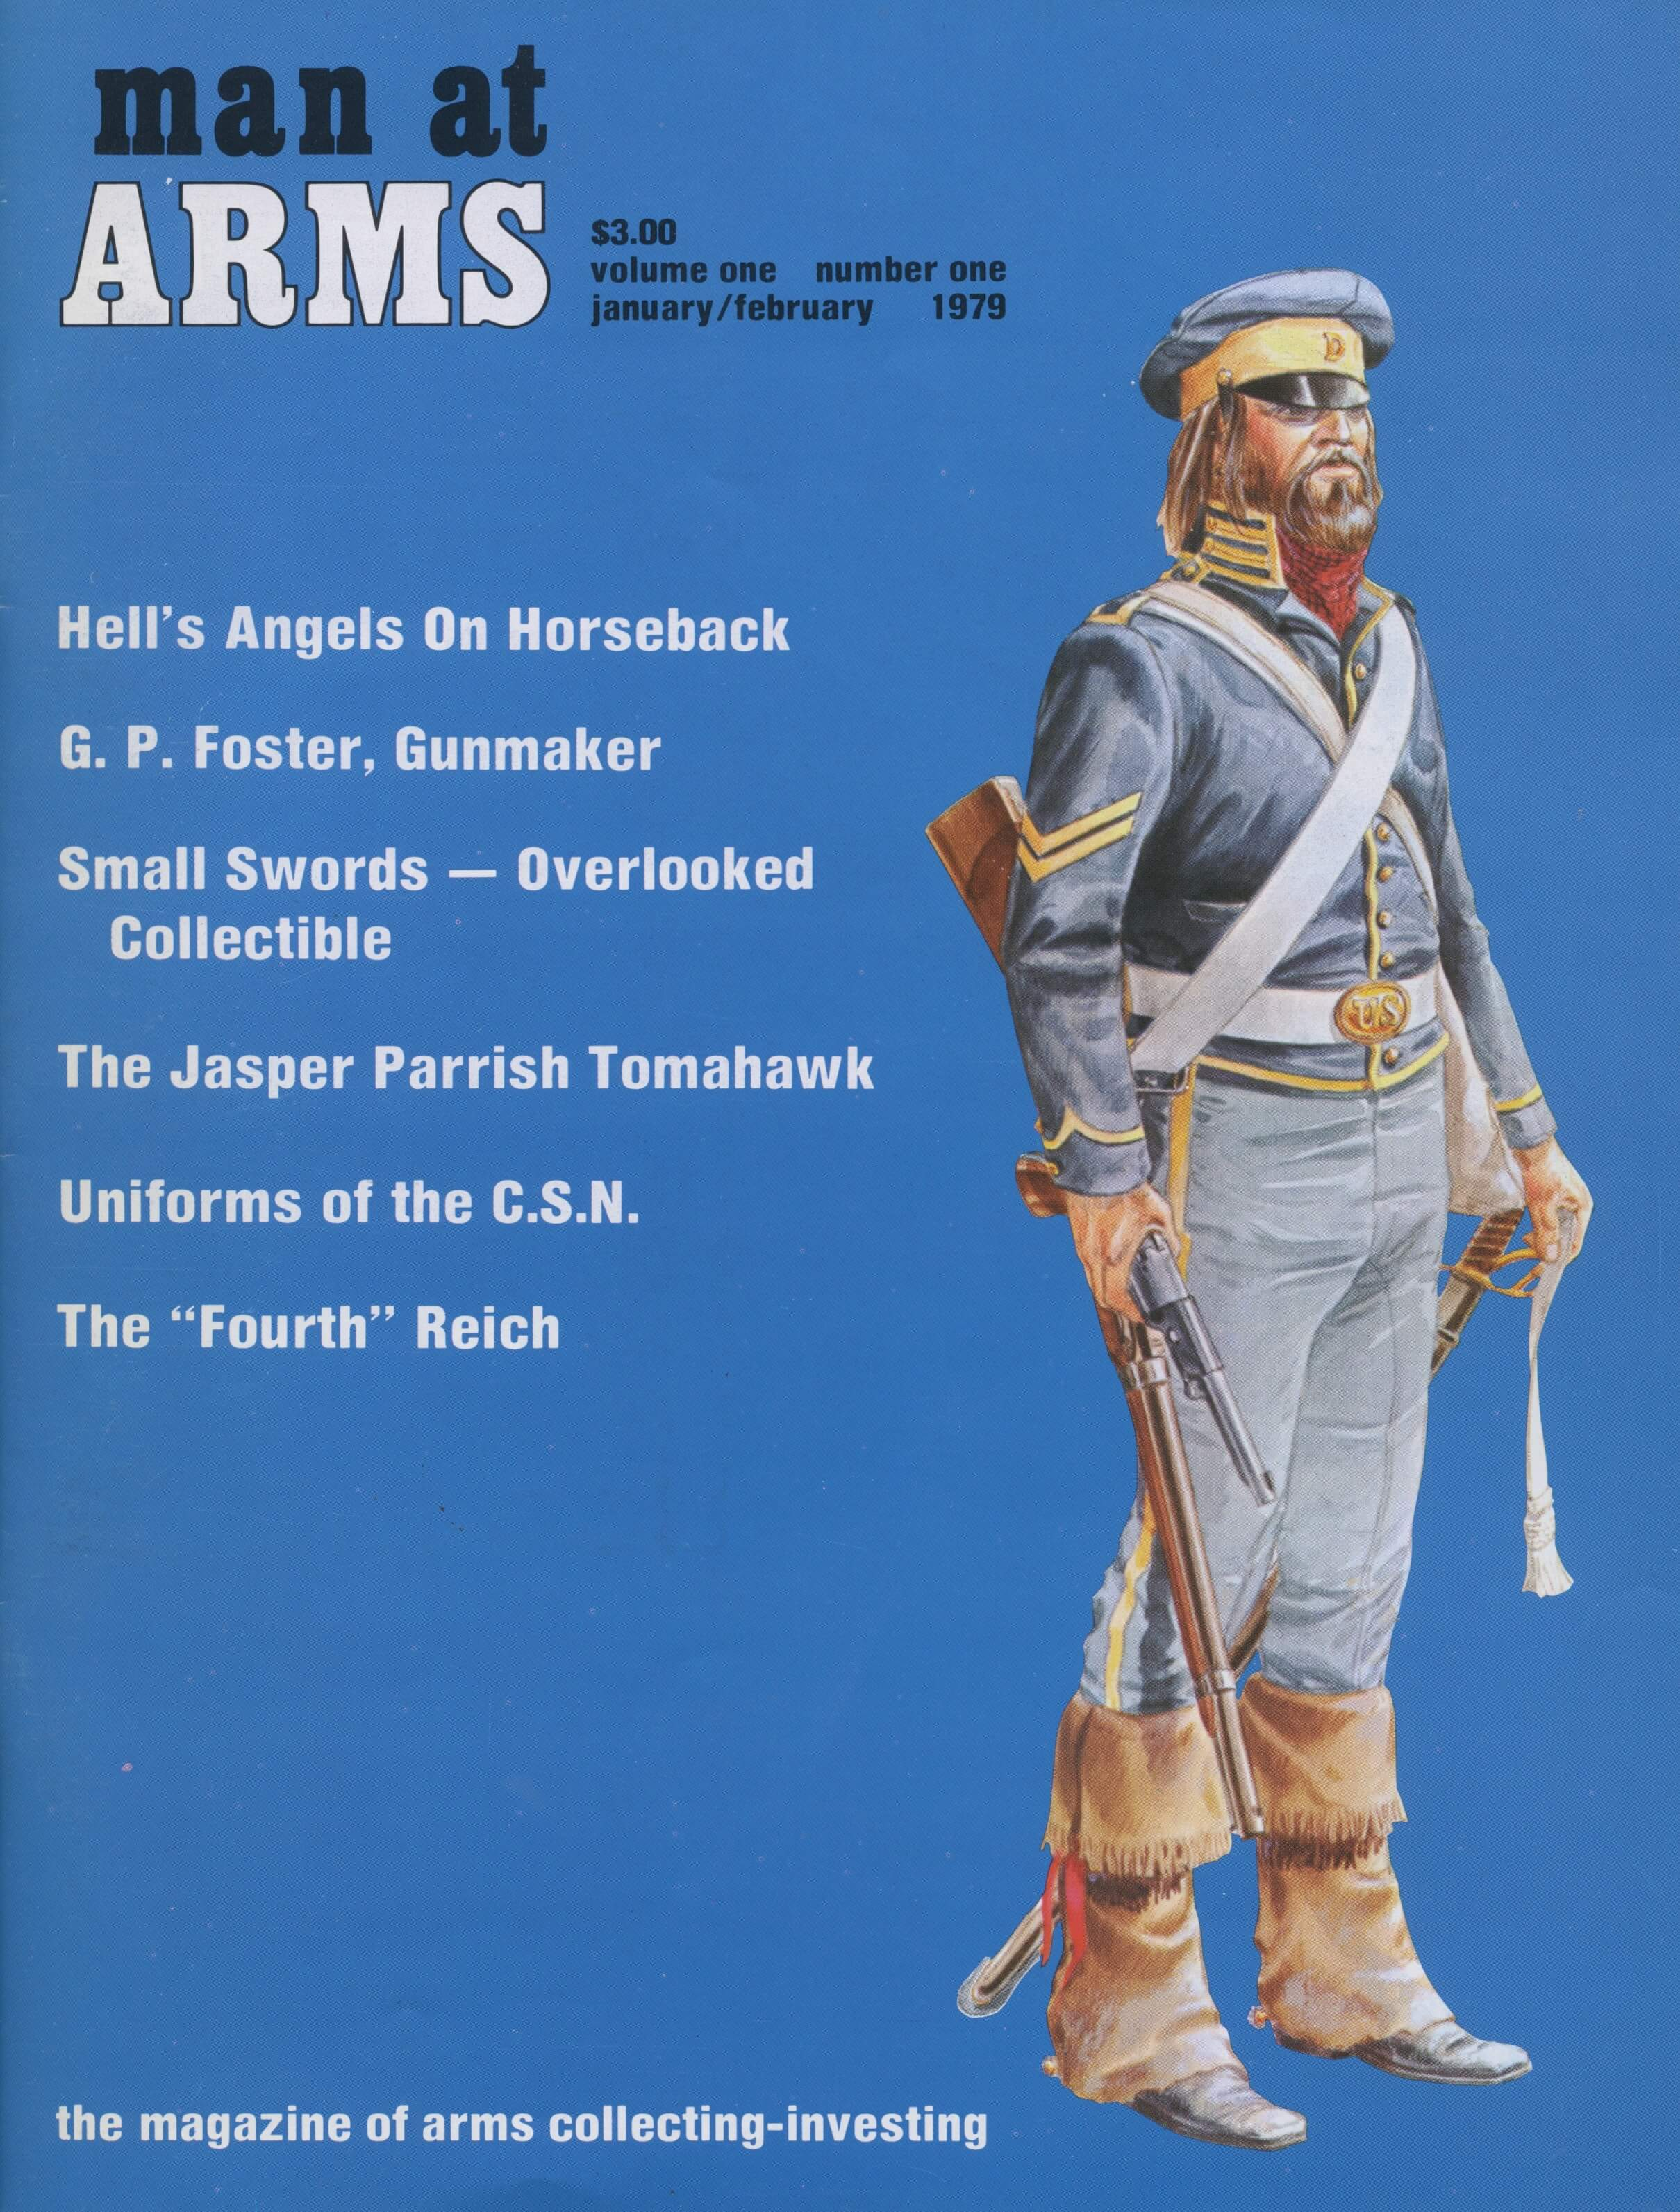 Volume 1, Number 1: January/February 1979